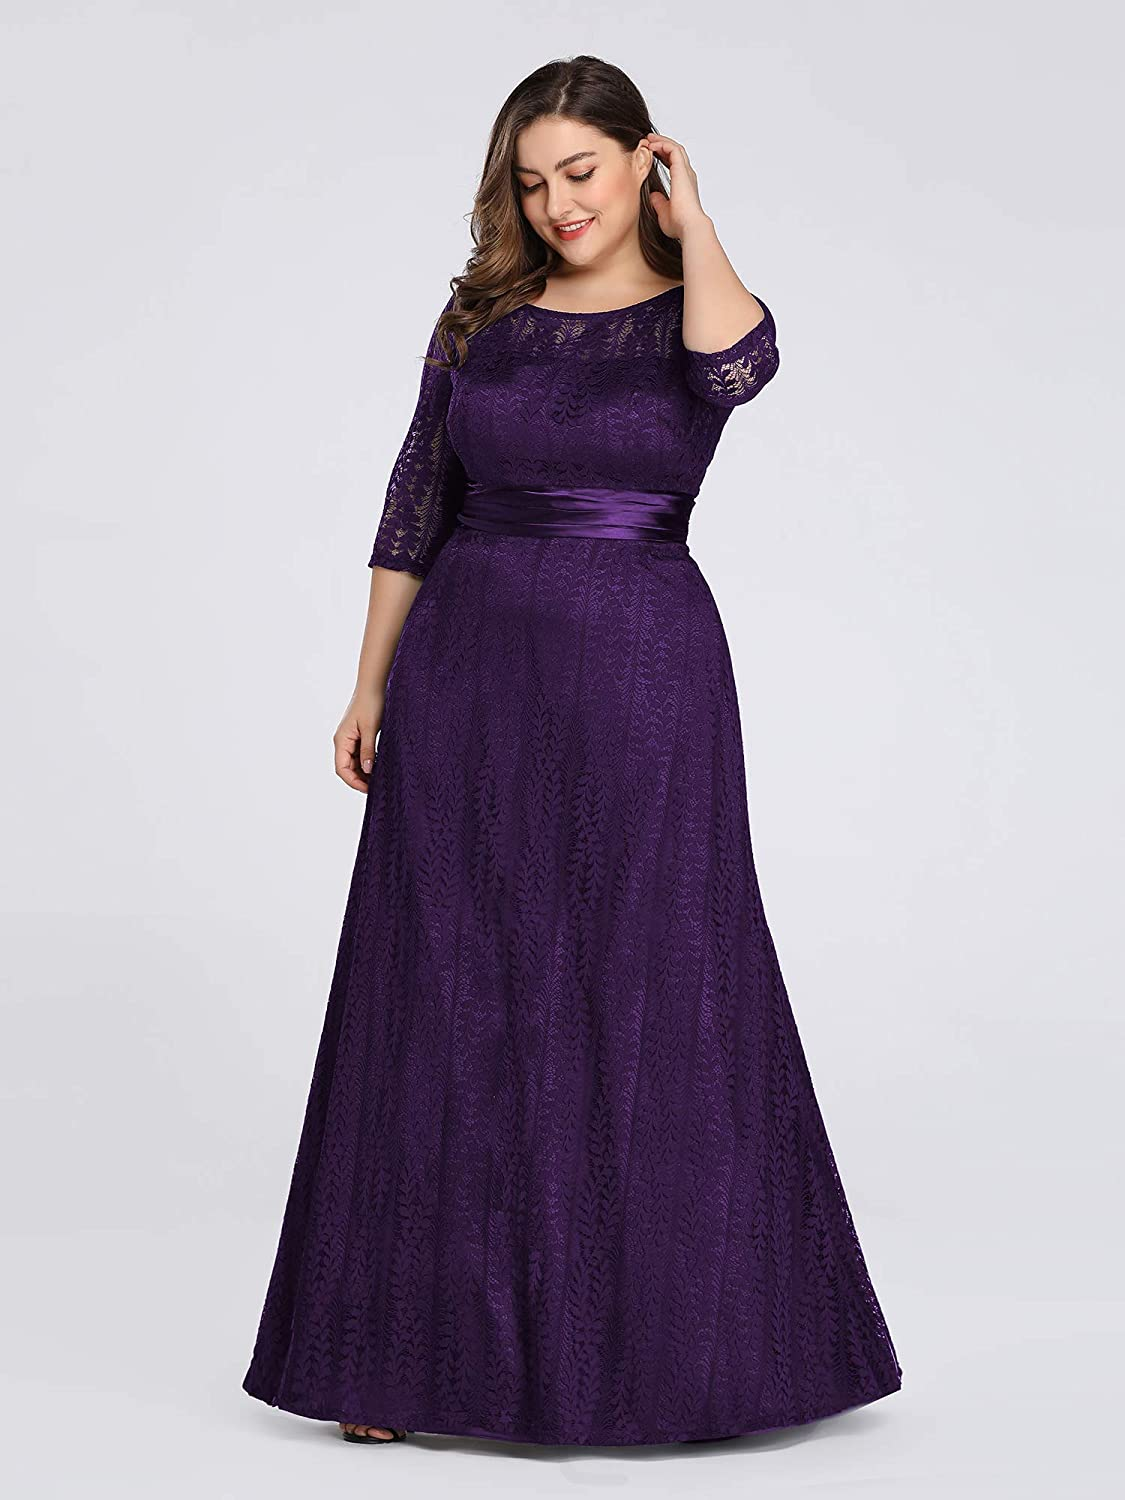 Ever-Pretty US Lace Sleeveless Long Evening Dresses A-Line Bridesmaid Party Gown